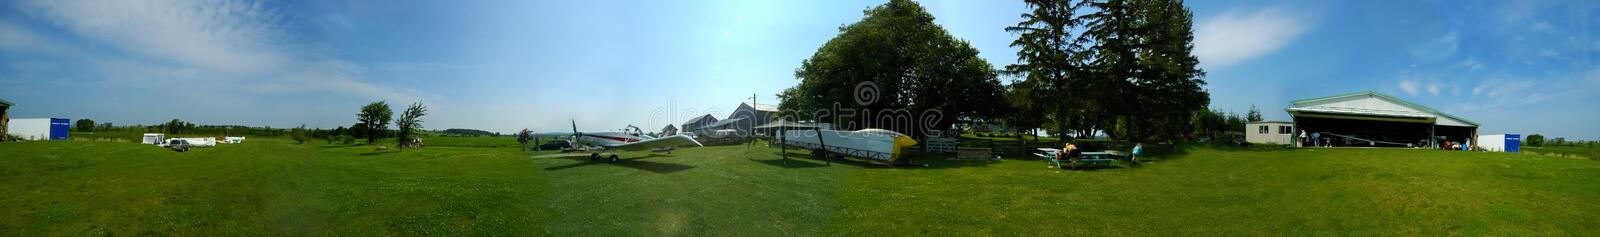 Airfield Pano royalty free stock photography